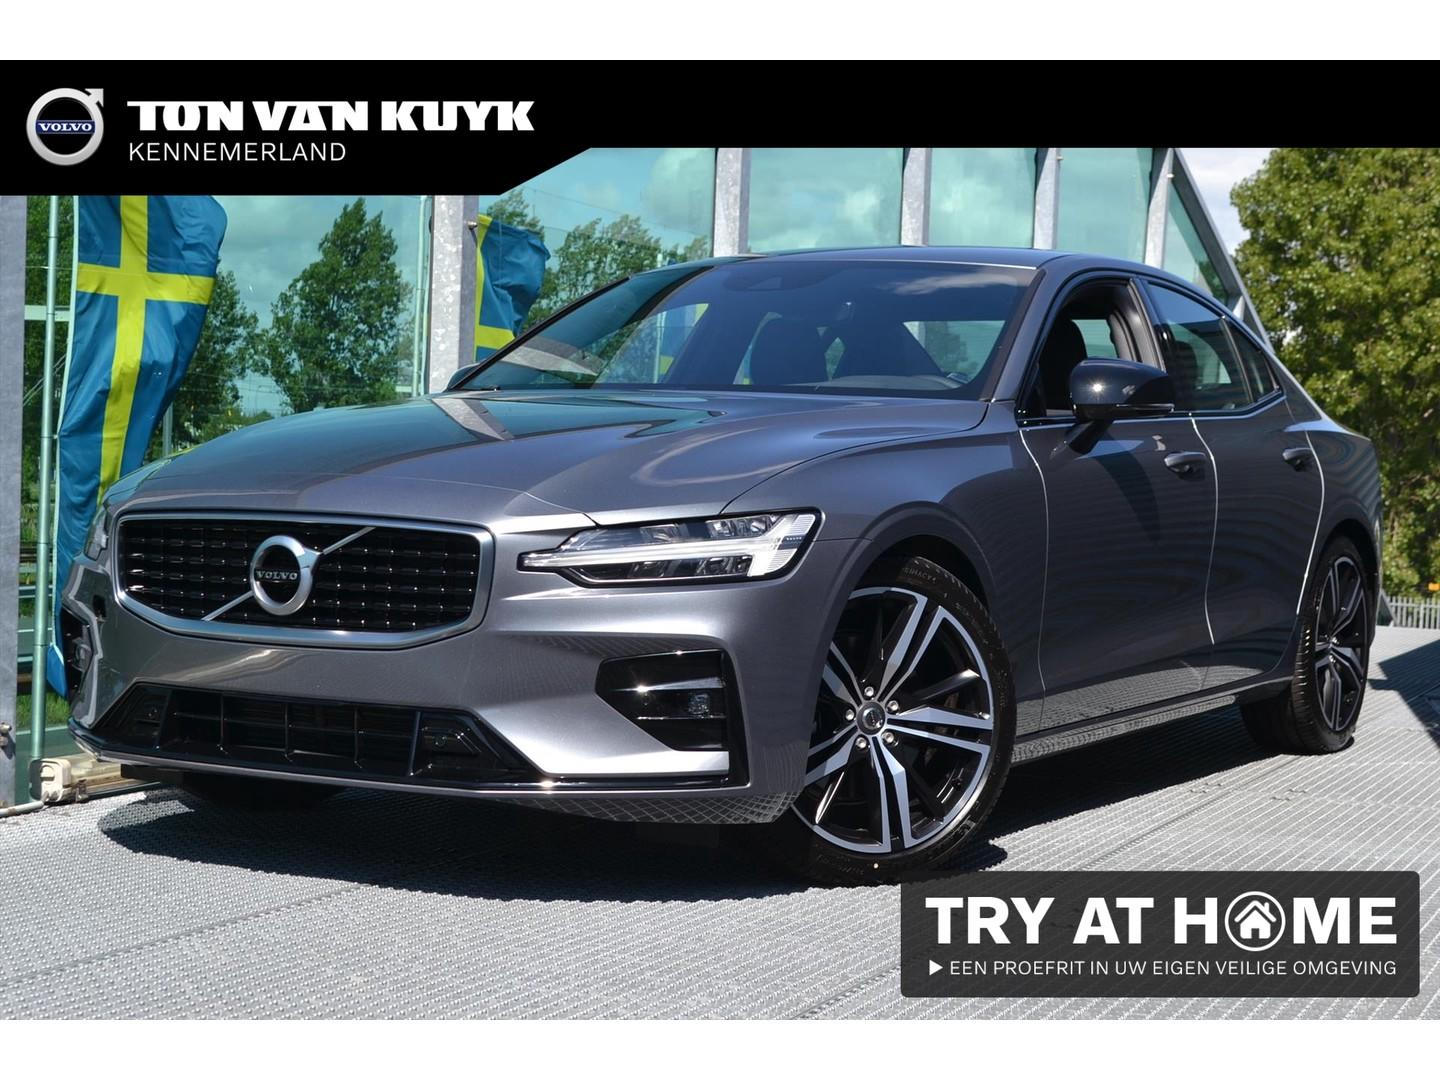 Volvo S60 New t4 190pk geartronic / r-design / osmium grey / 19 inch